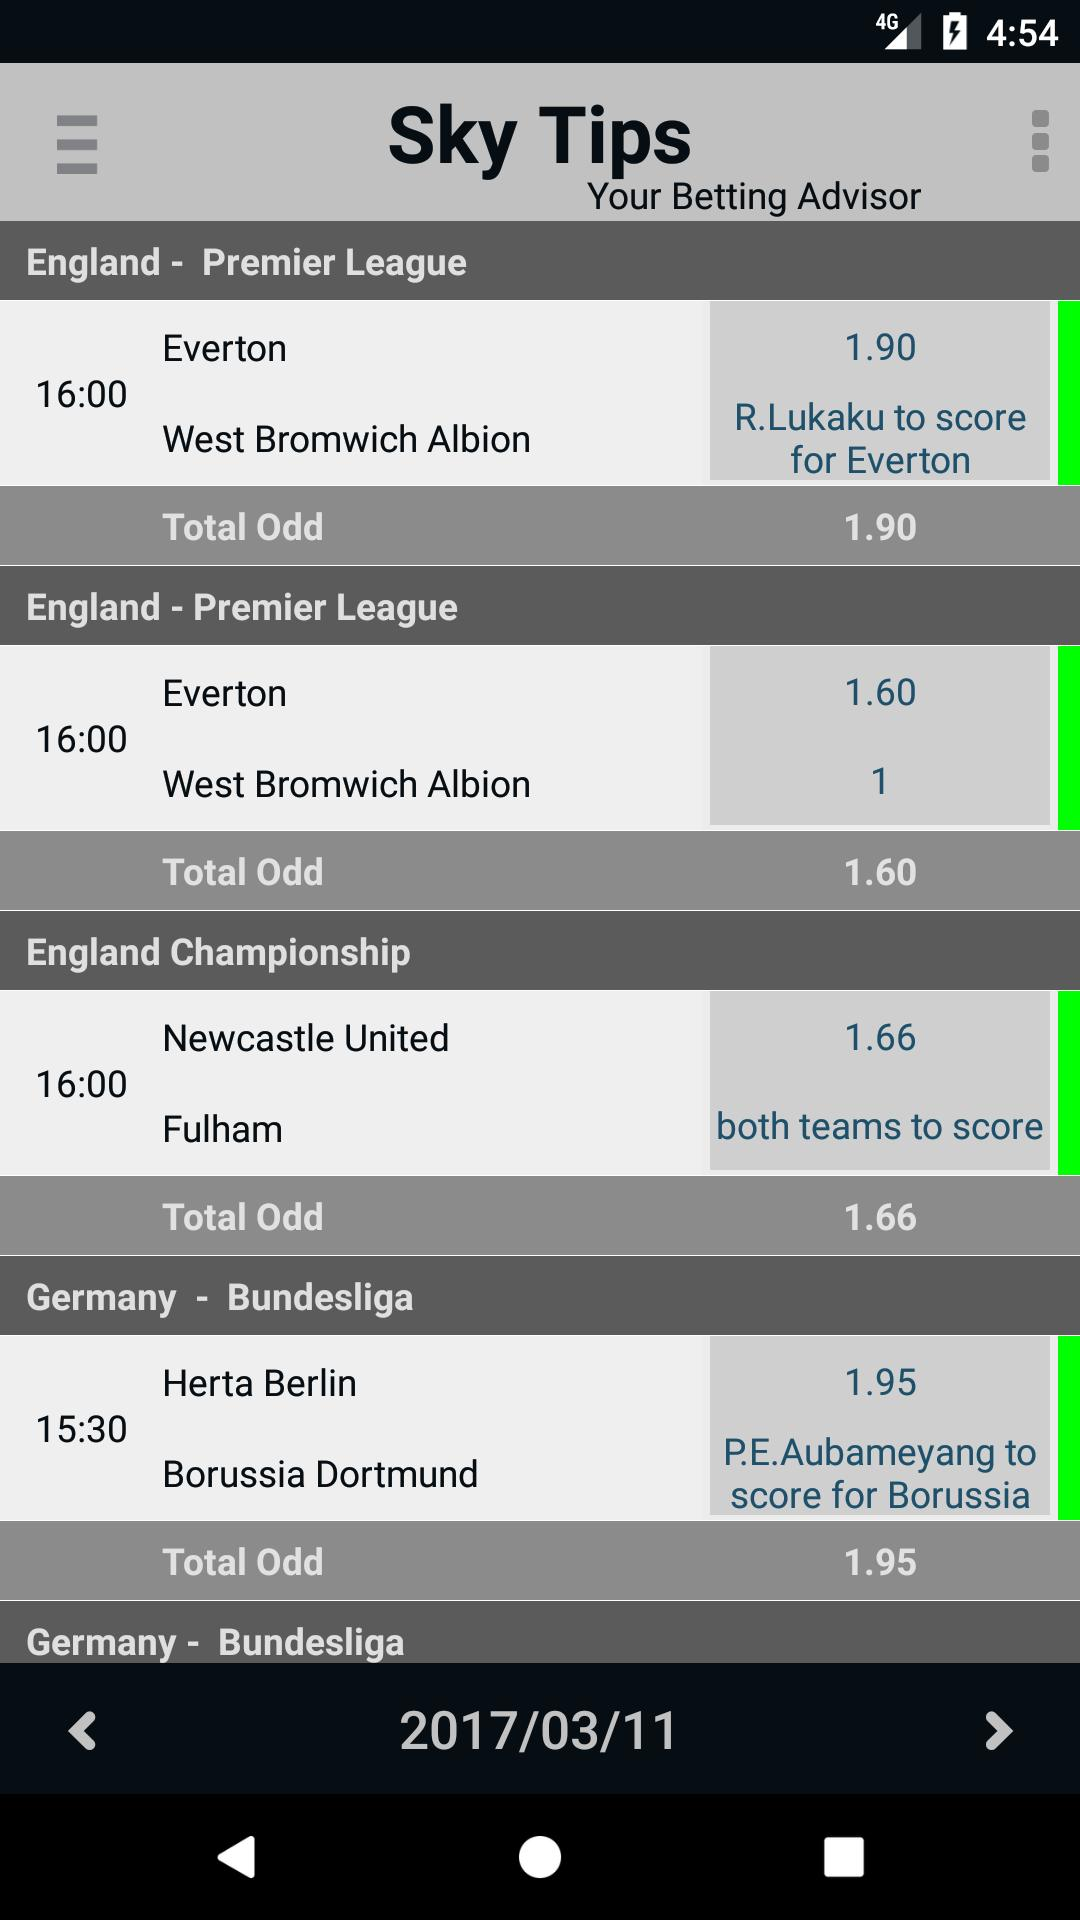 Betting tips 1x2 predictions spread betting companies compared to apple